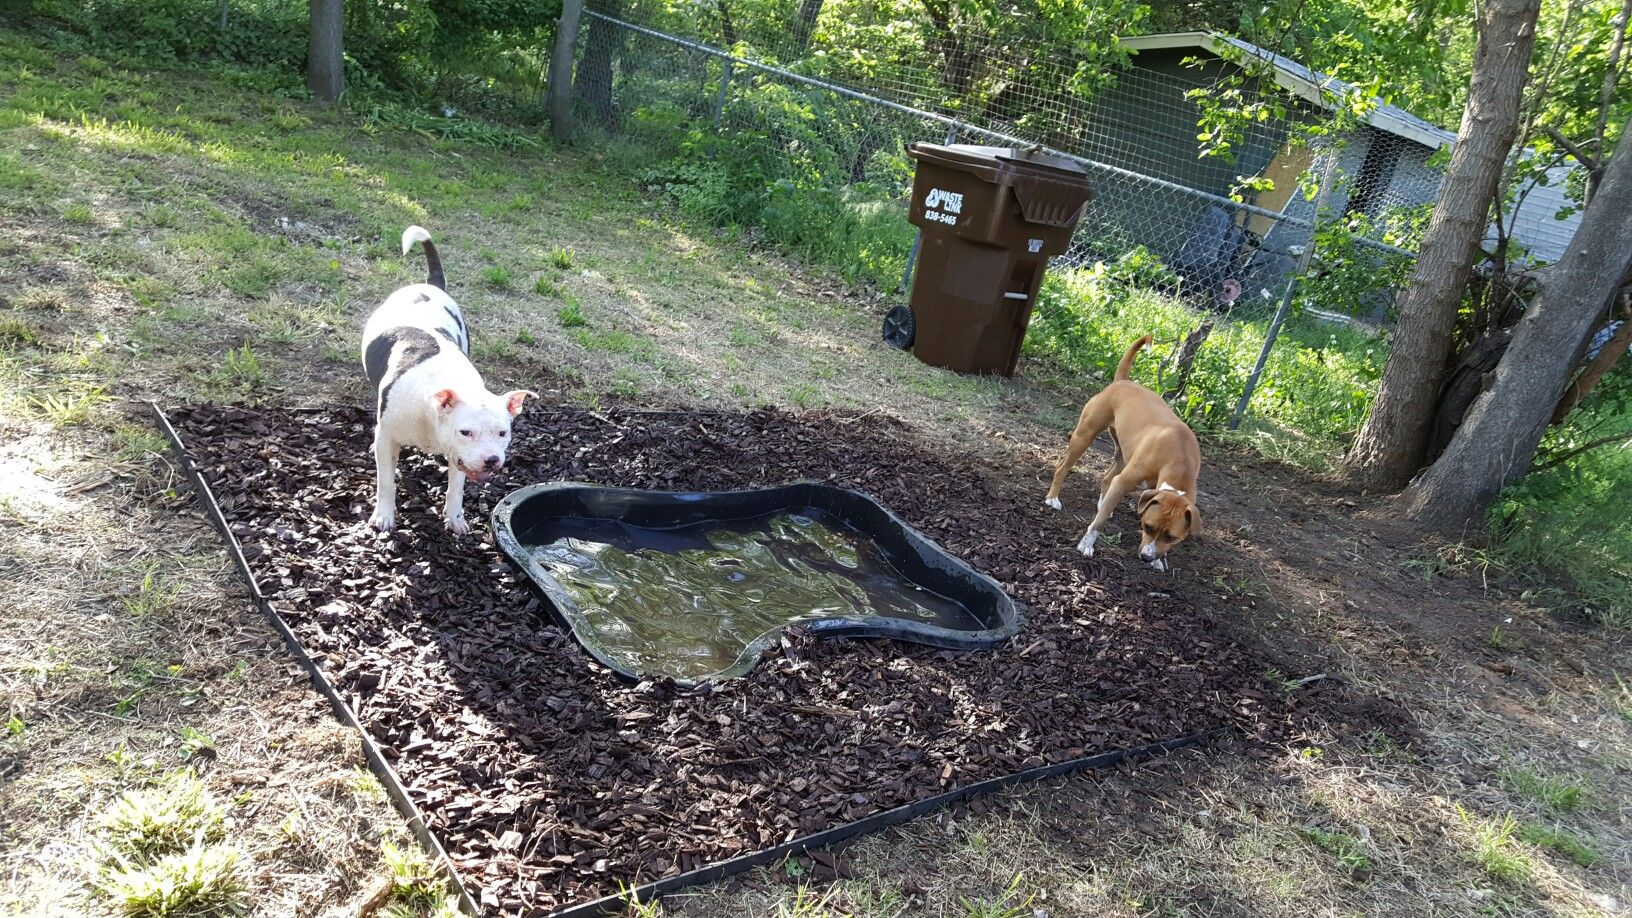 Dug a hole with a 3ft deep 6ft long koy pond for a doggie